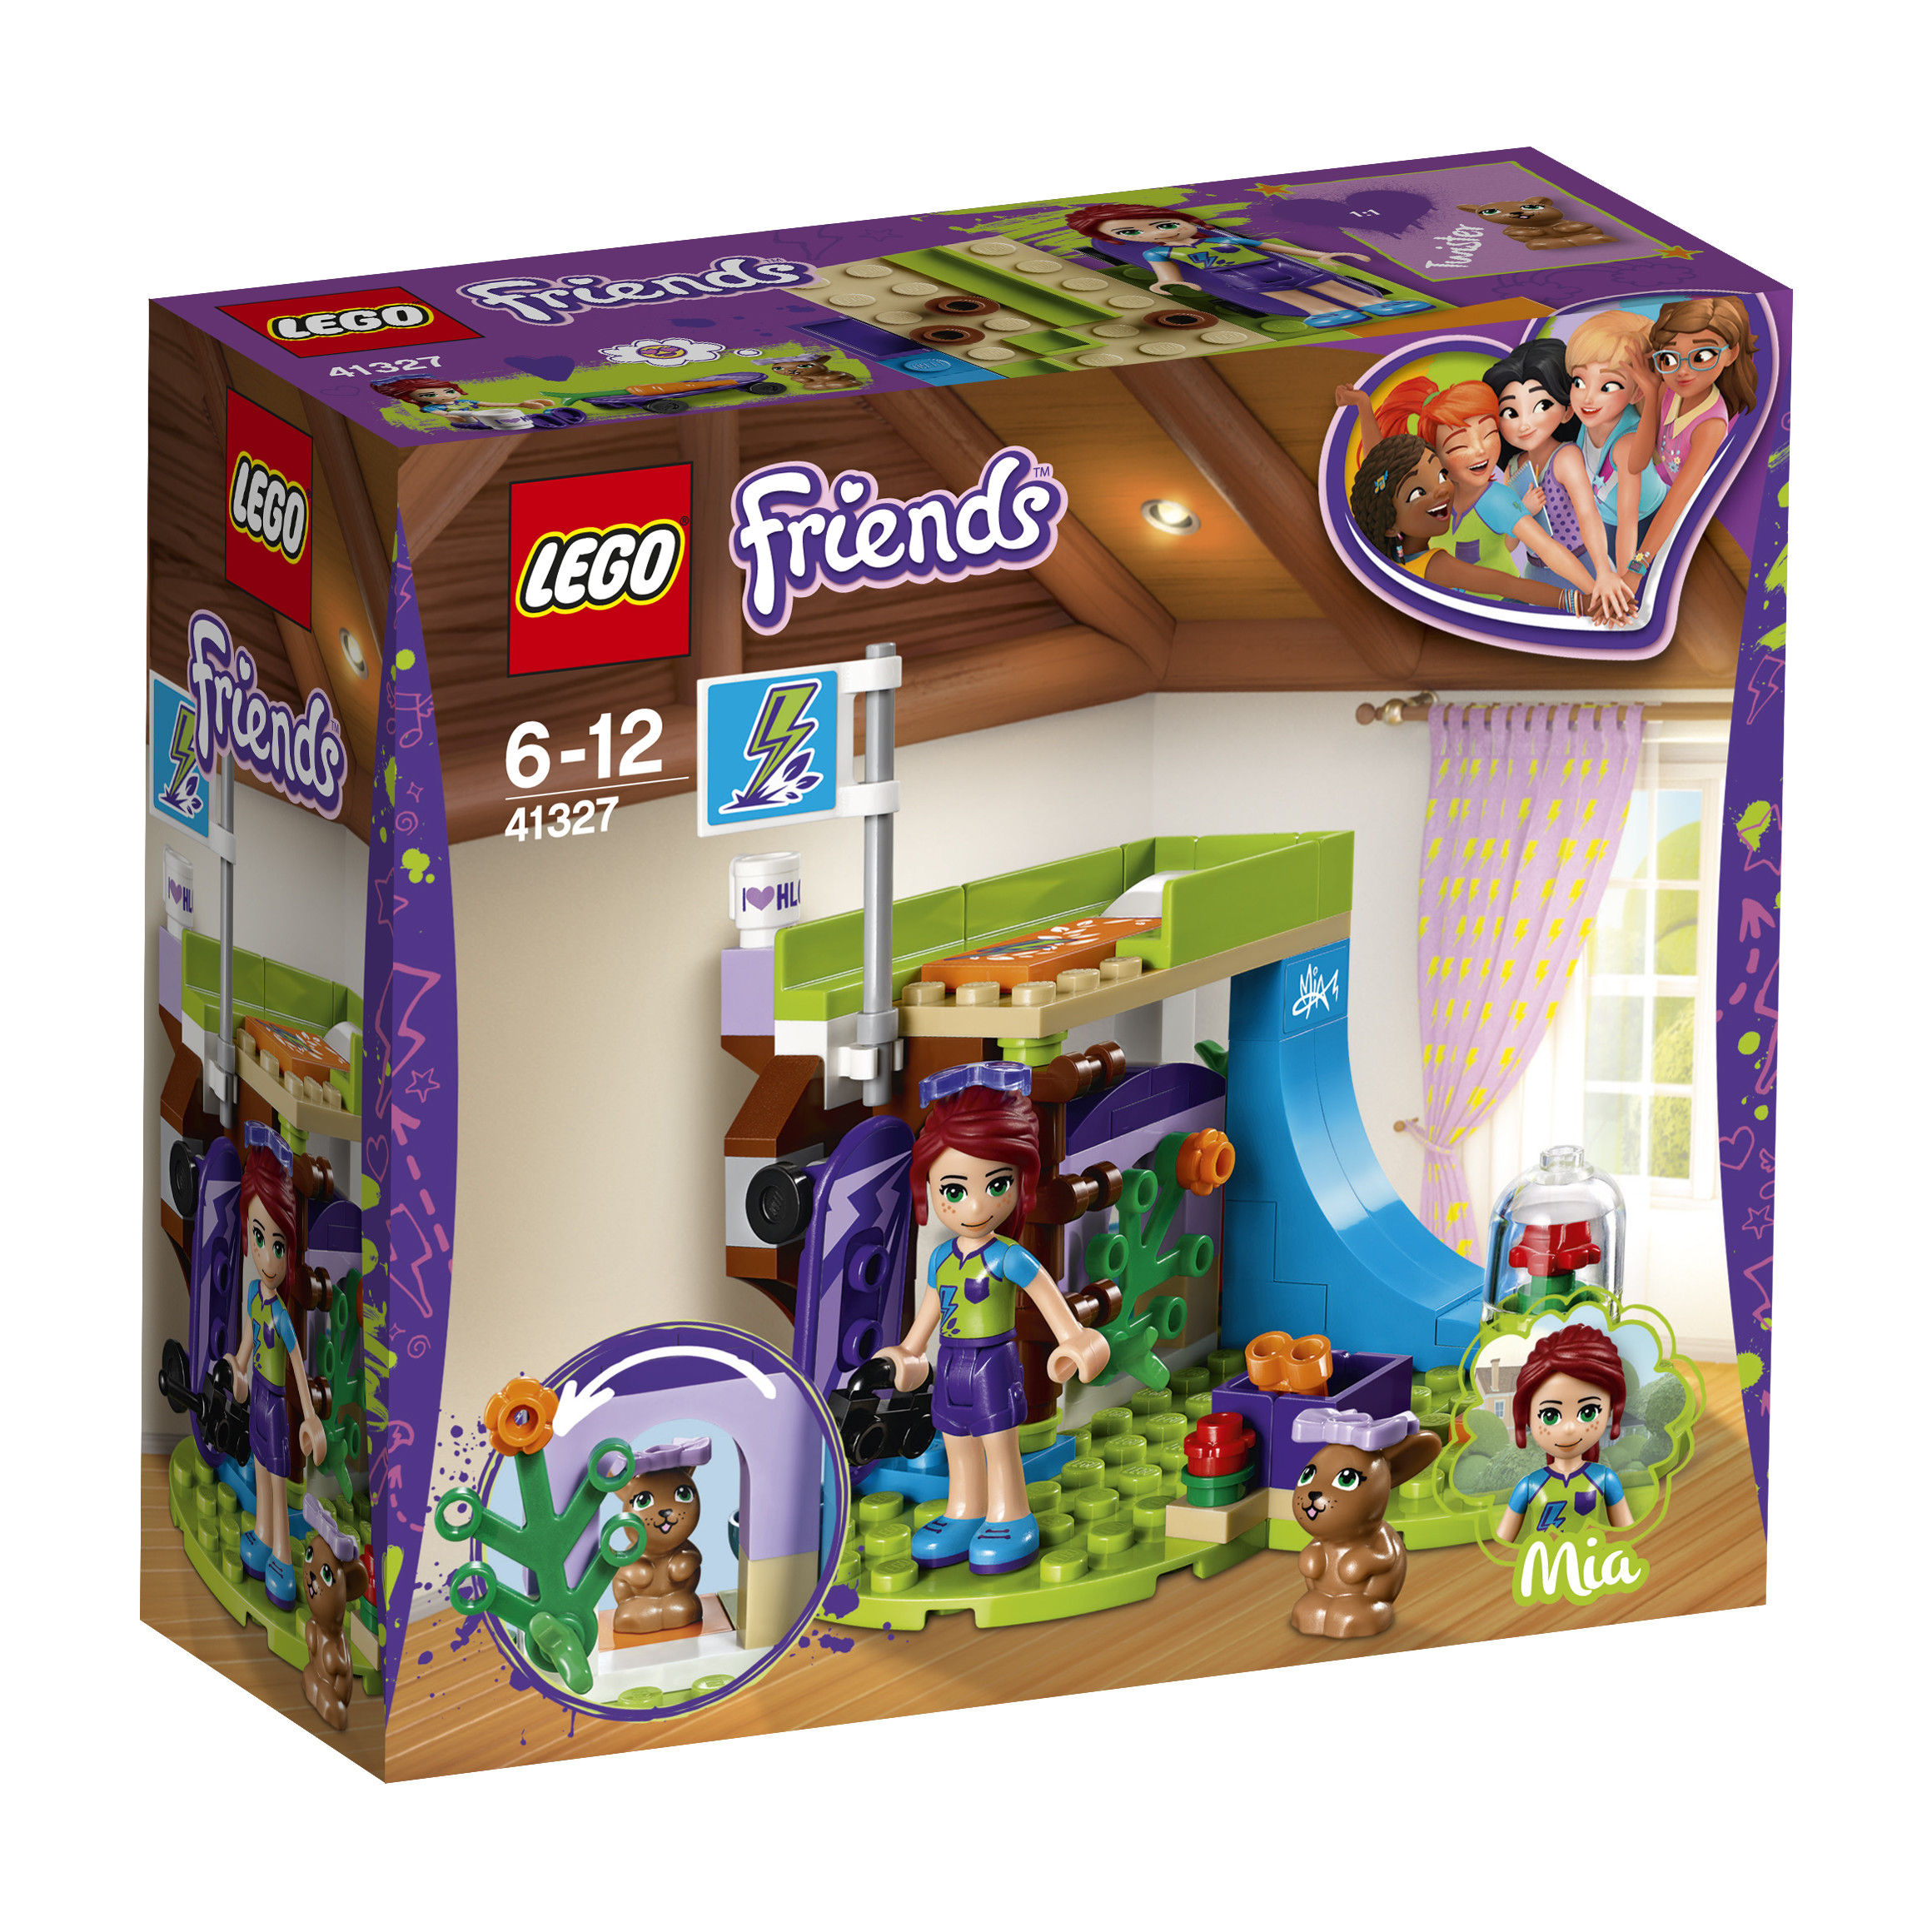 Конструктор LEGO Friends 41327 Комната Мии цена